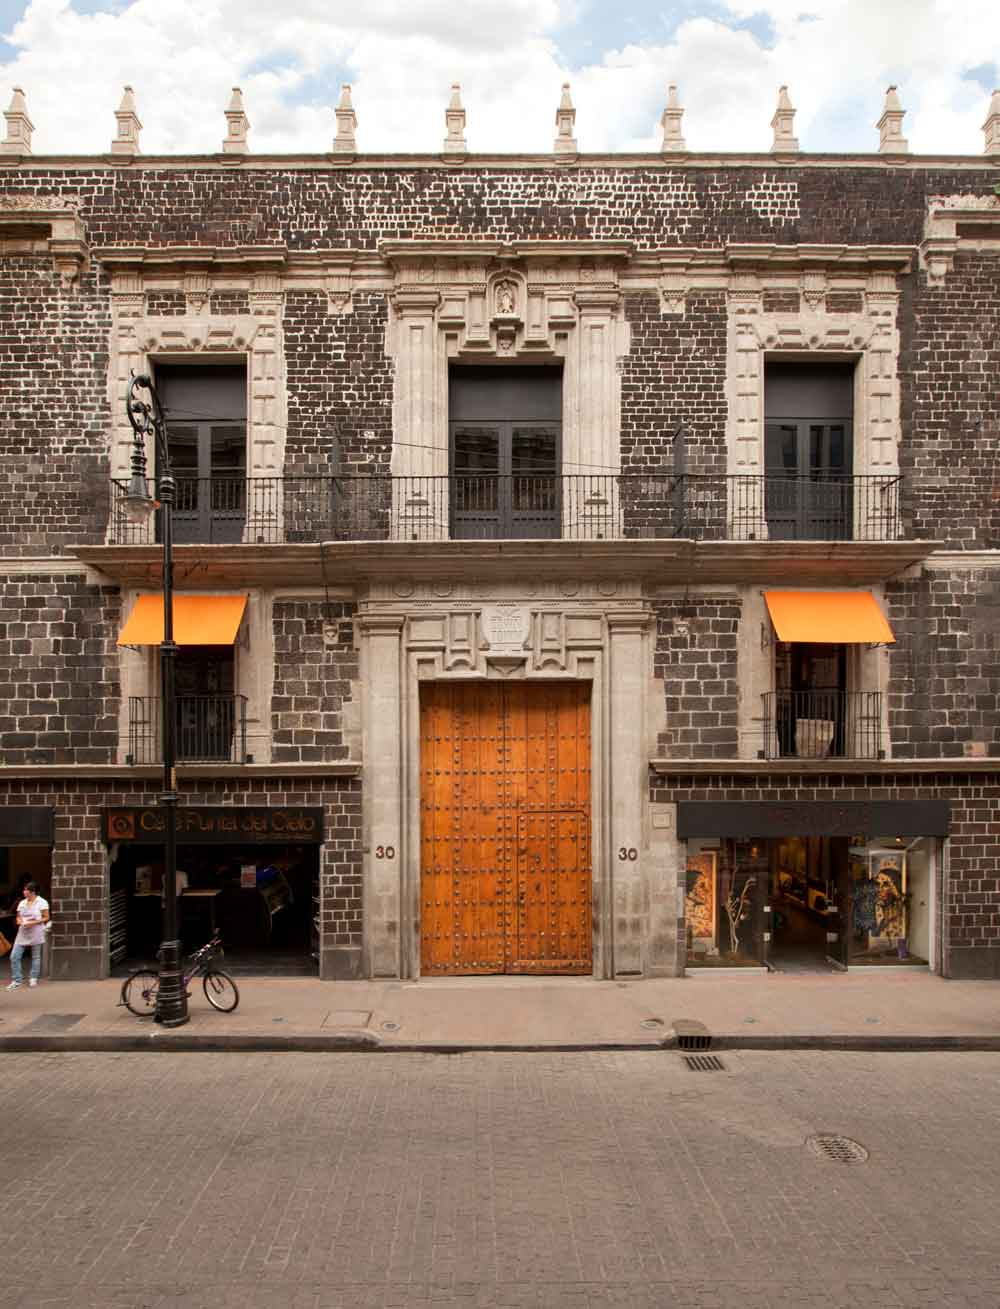 Blending Colonial 17th Century Grandeur With A Raw Industrial Edge, Downtown Integrates Local Indigenous Culture Into Its Concept While Celebrating Its Location In The Centro Historico Borough Of Mexico City.